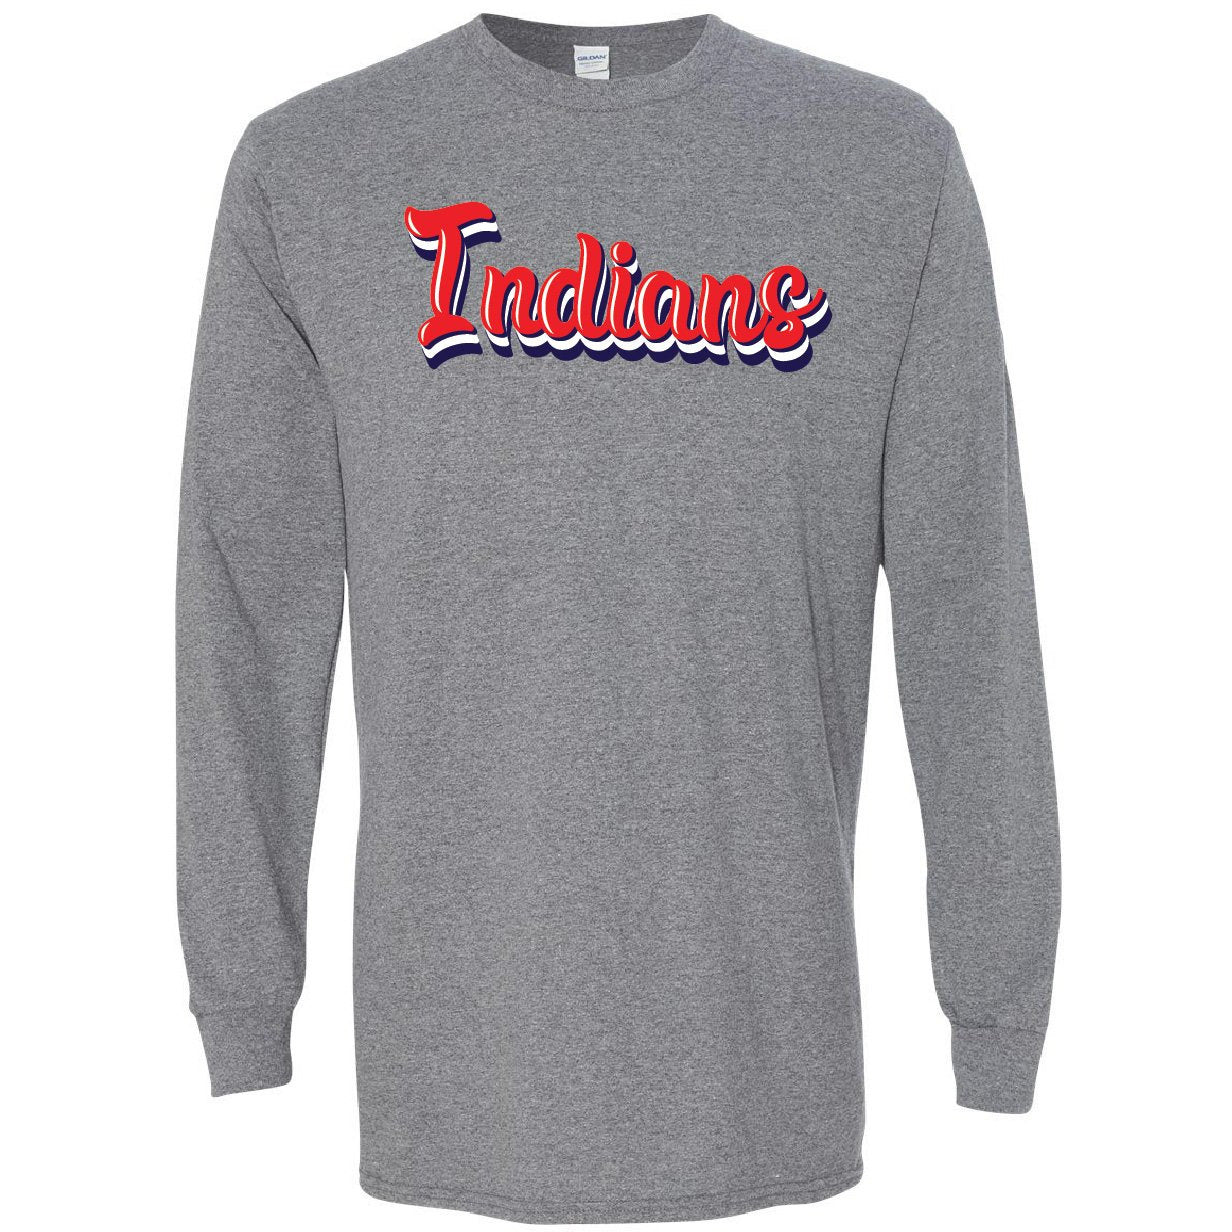 Jim Ned Indians - Retro Long Sleeve T-Shirt